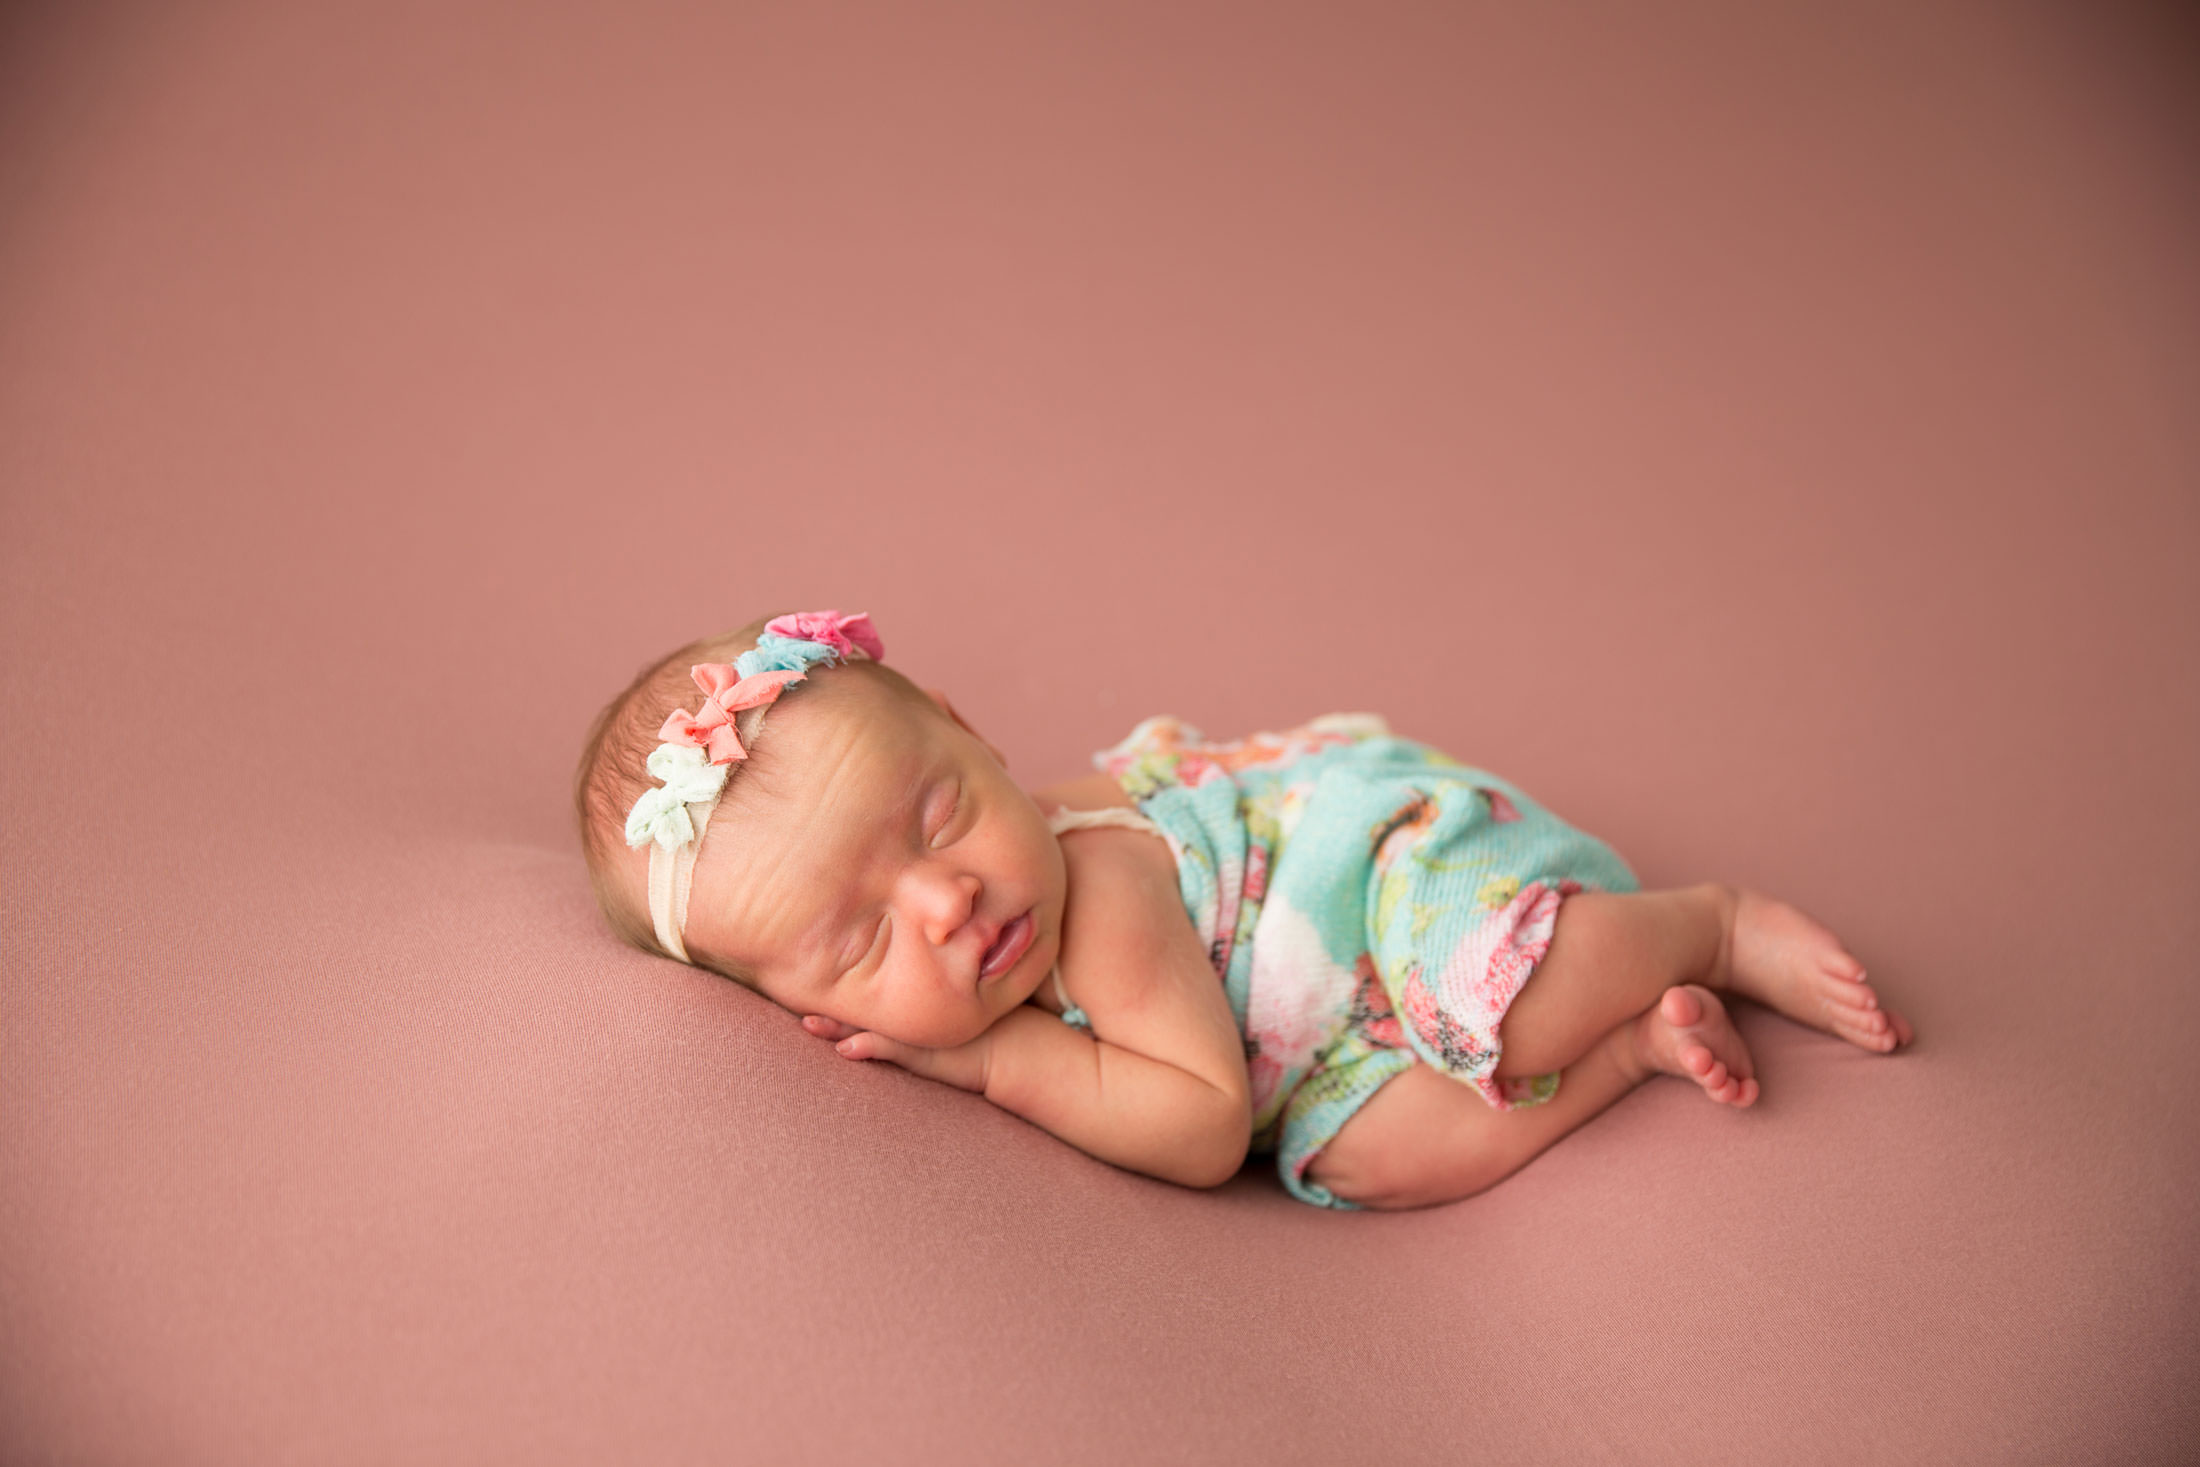 los angeles newborn babygirl photo photography 1